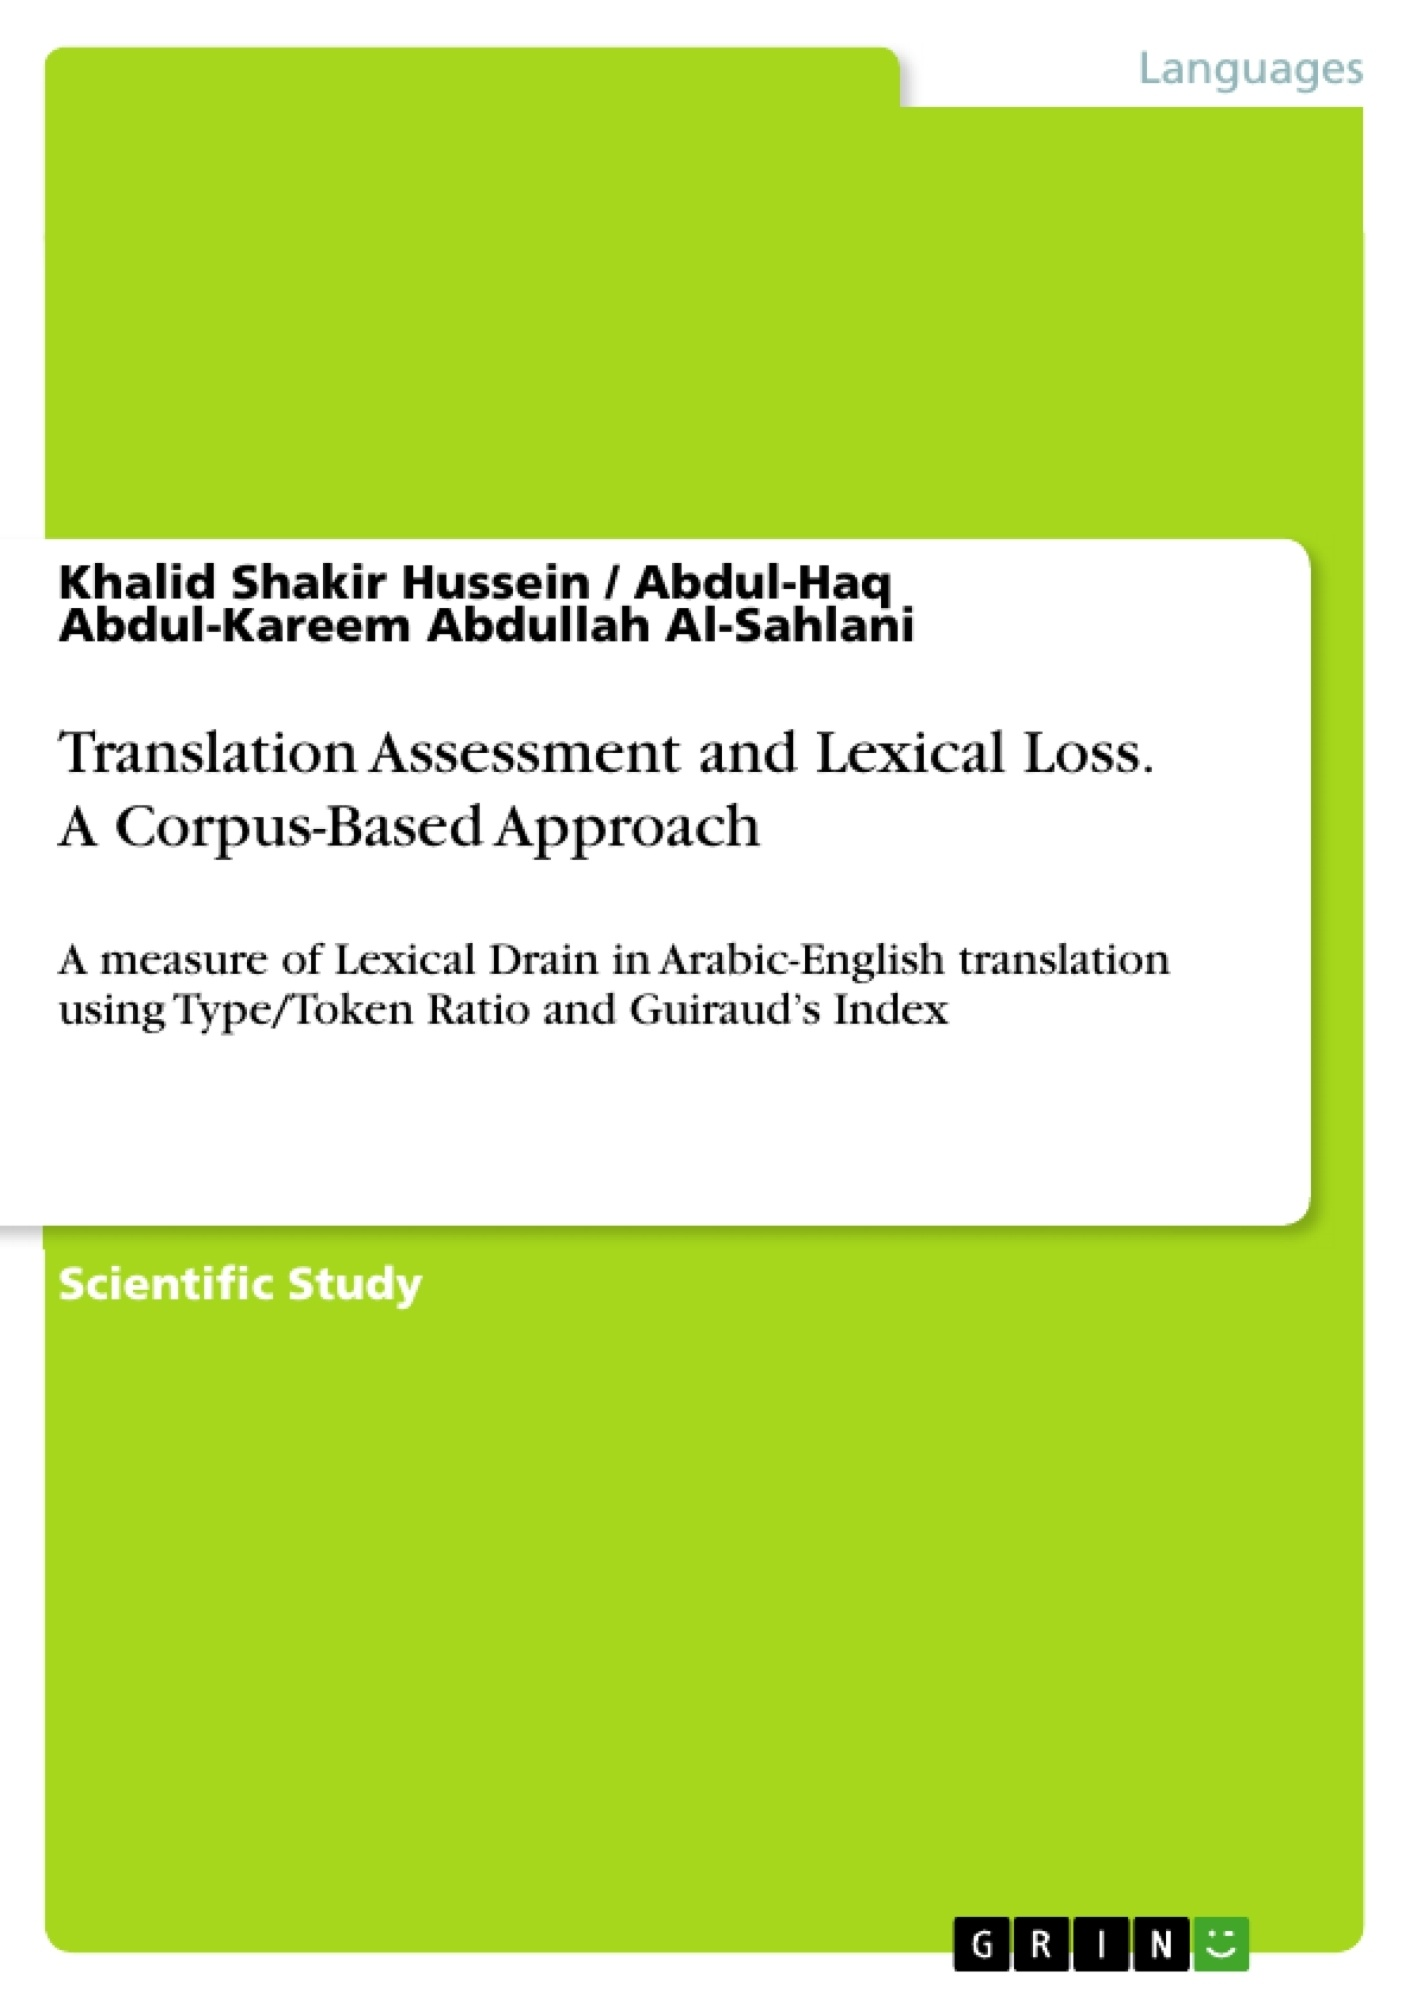 GRIN - Translation Assessment and Lexical Loss  A Corpus-Based Approach